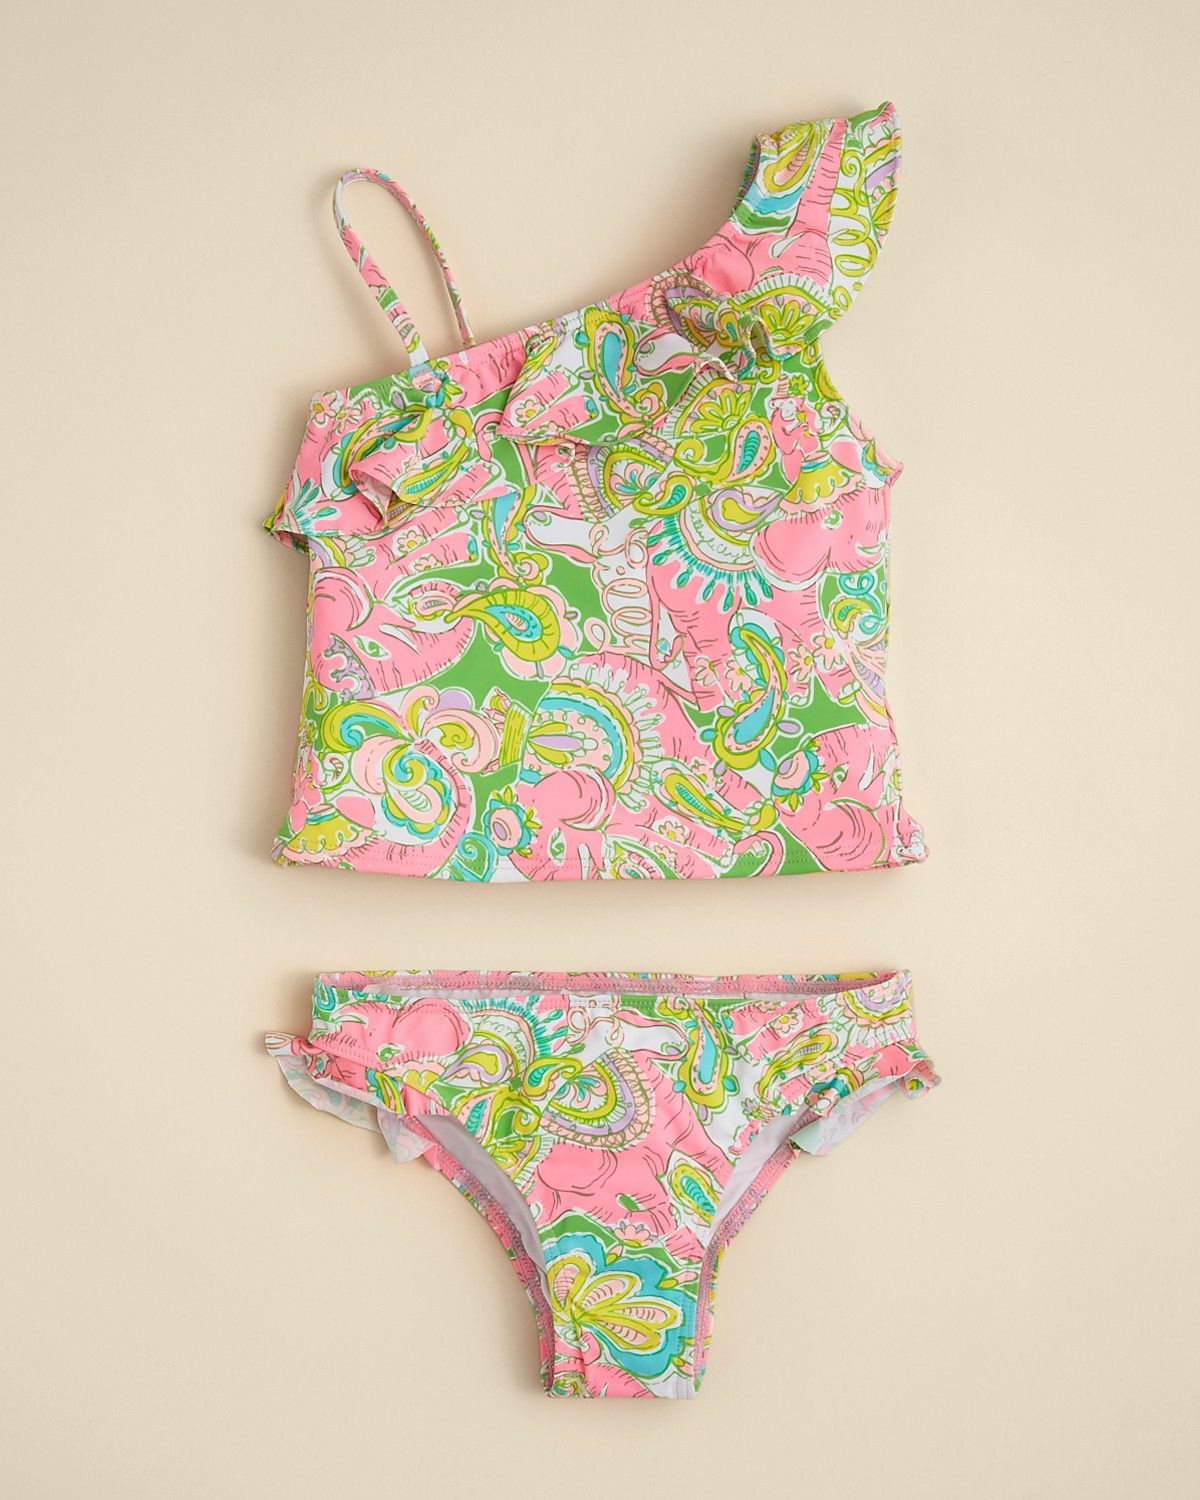 91005555f8971 Lilly Pulitzer Girls Clemson Tankini - Sizes 2-6 | Bloomingdales ...